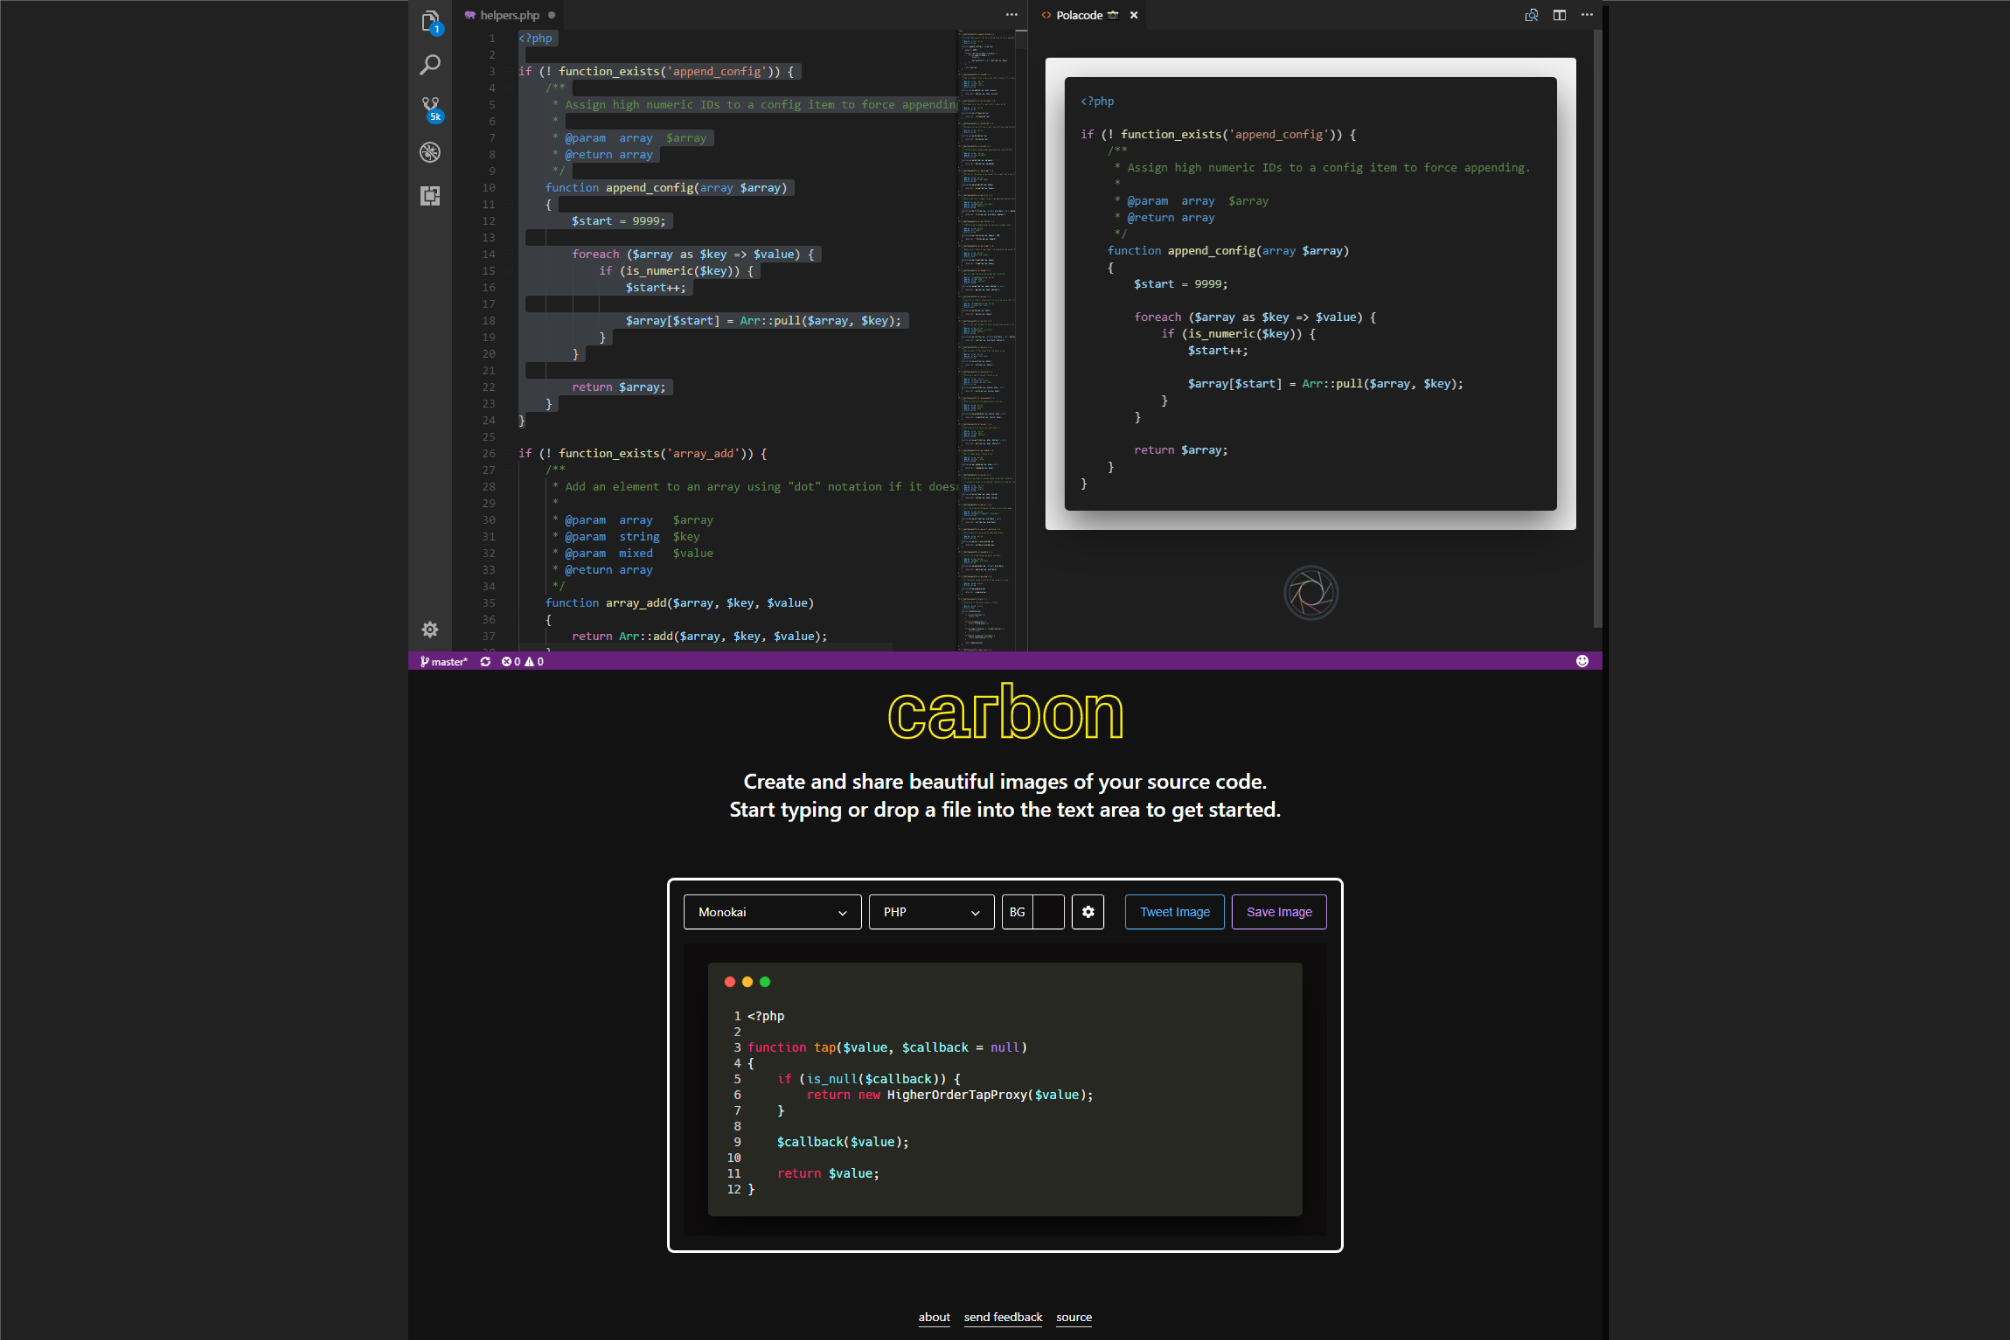 Create Code Screenshots from your editor using carbon and